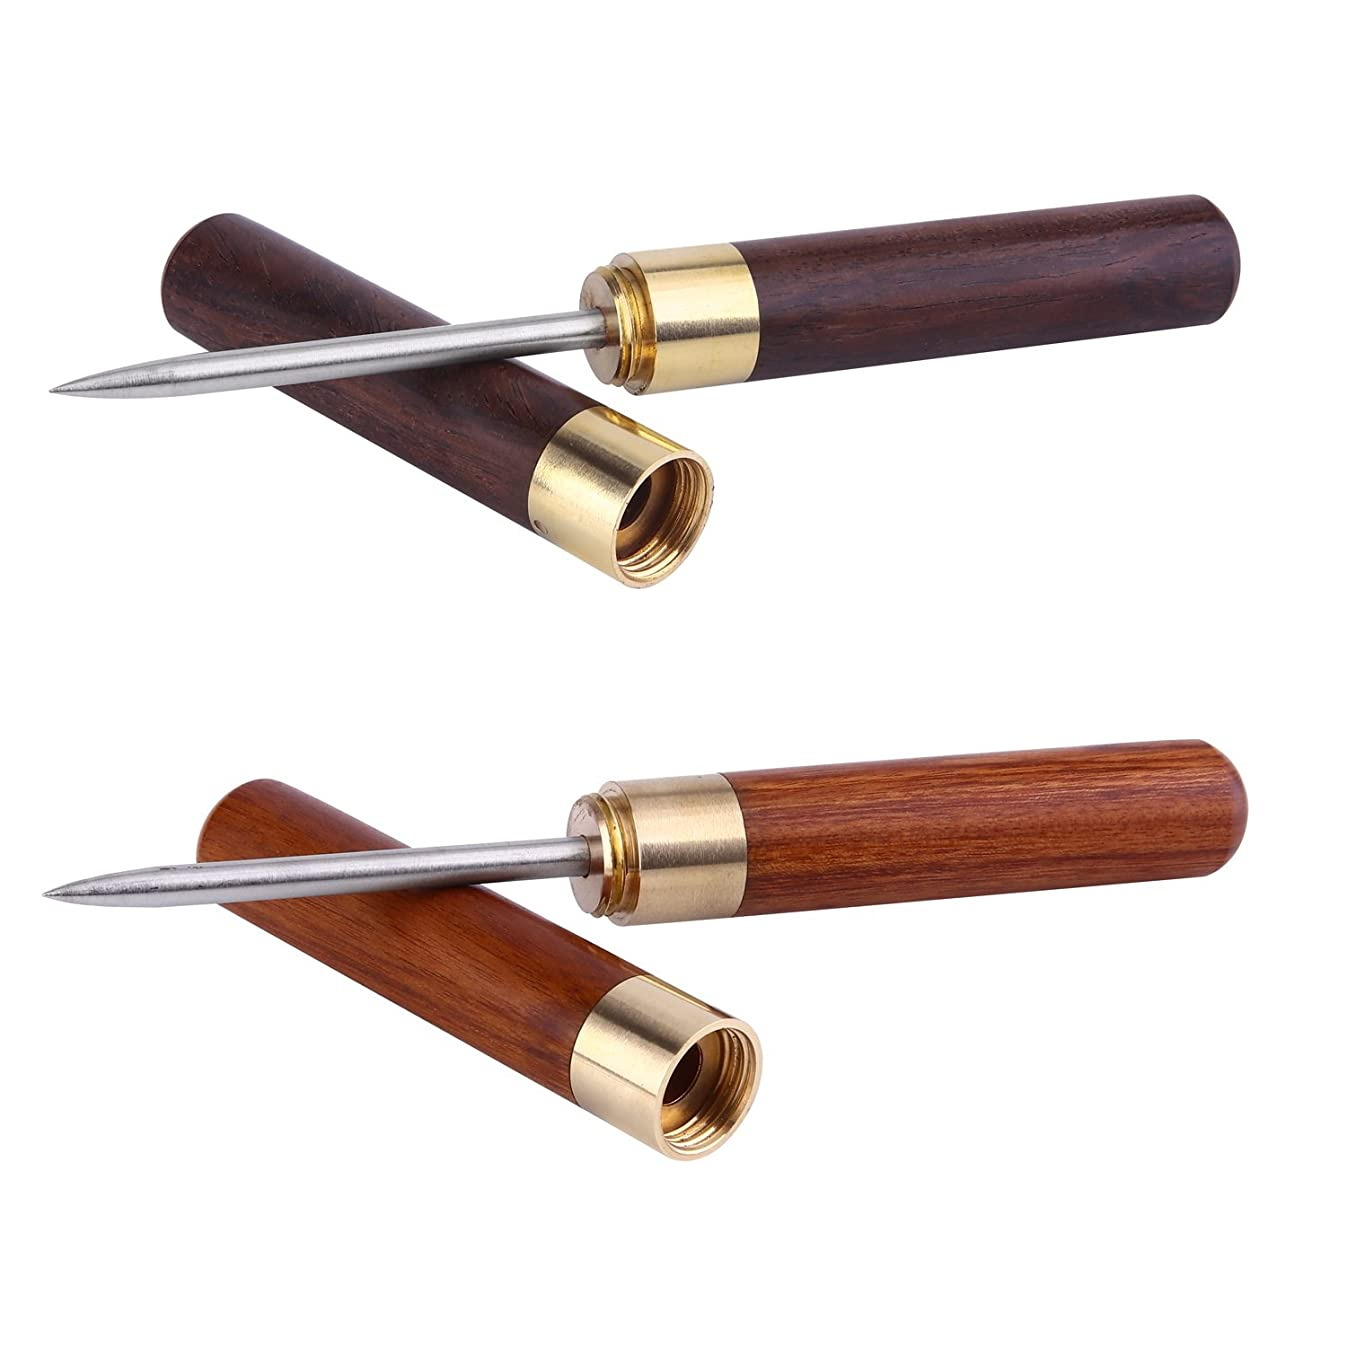 Anndason 2 Pcs Stainless Steel Ice Picks with Wooden Handle and Safety Cover Kitchen Tool.